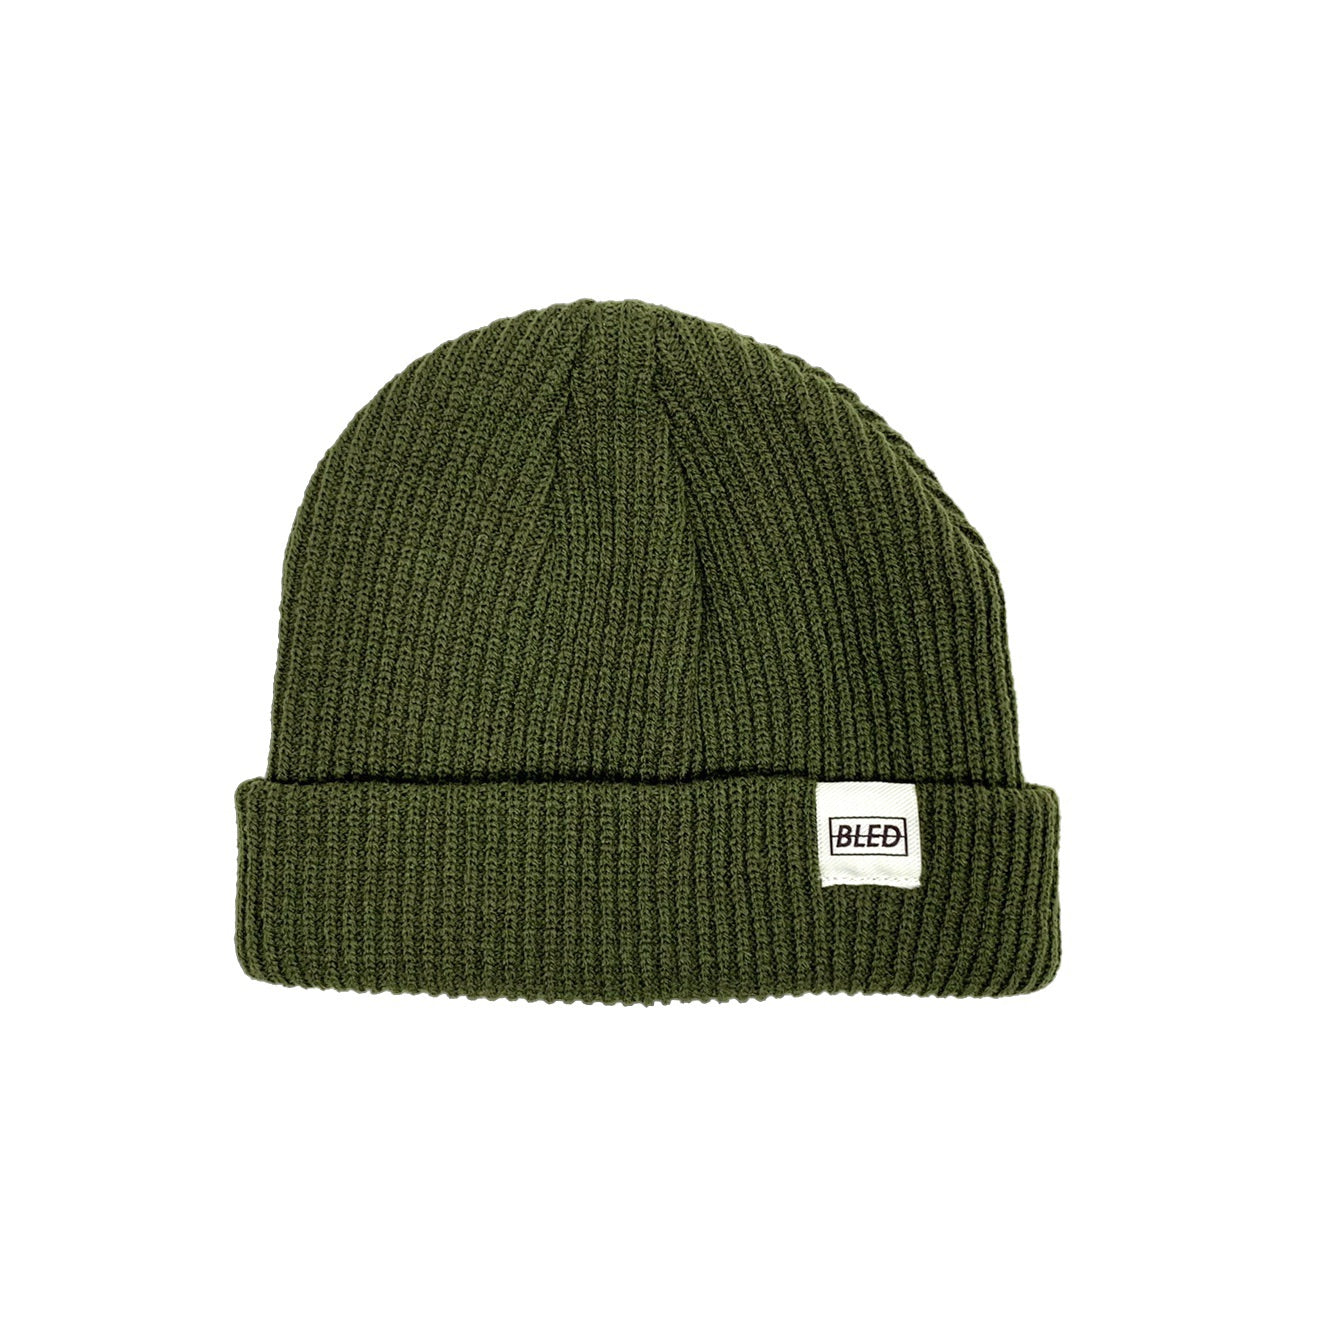 bled bledwear fisherman beanie dark green olive streetwear hypebeast accessories mens headwear grailed